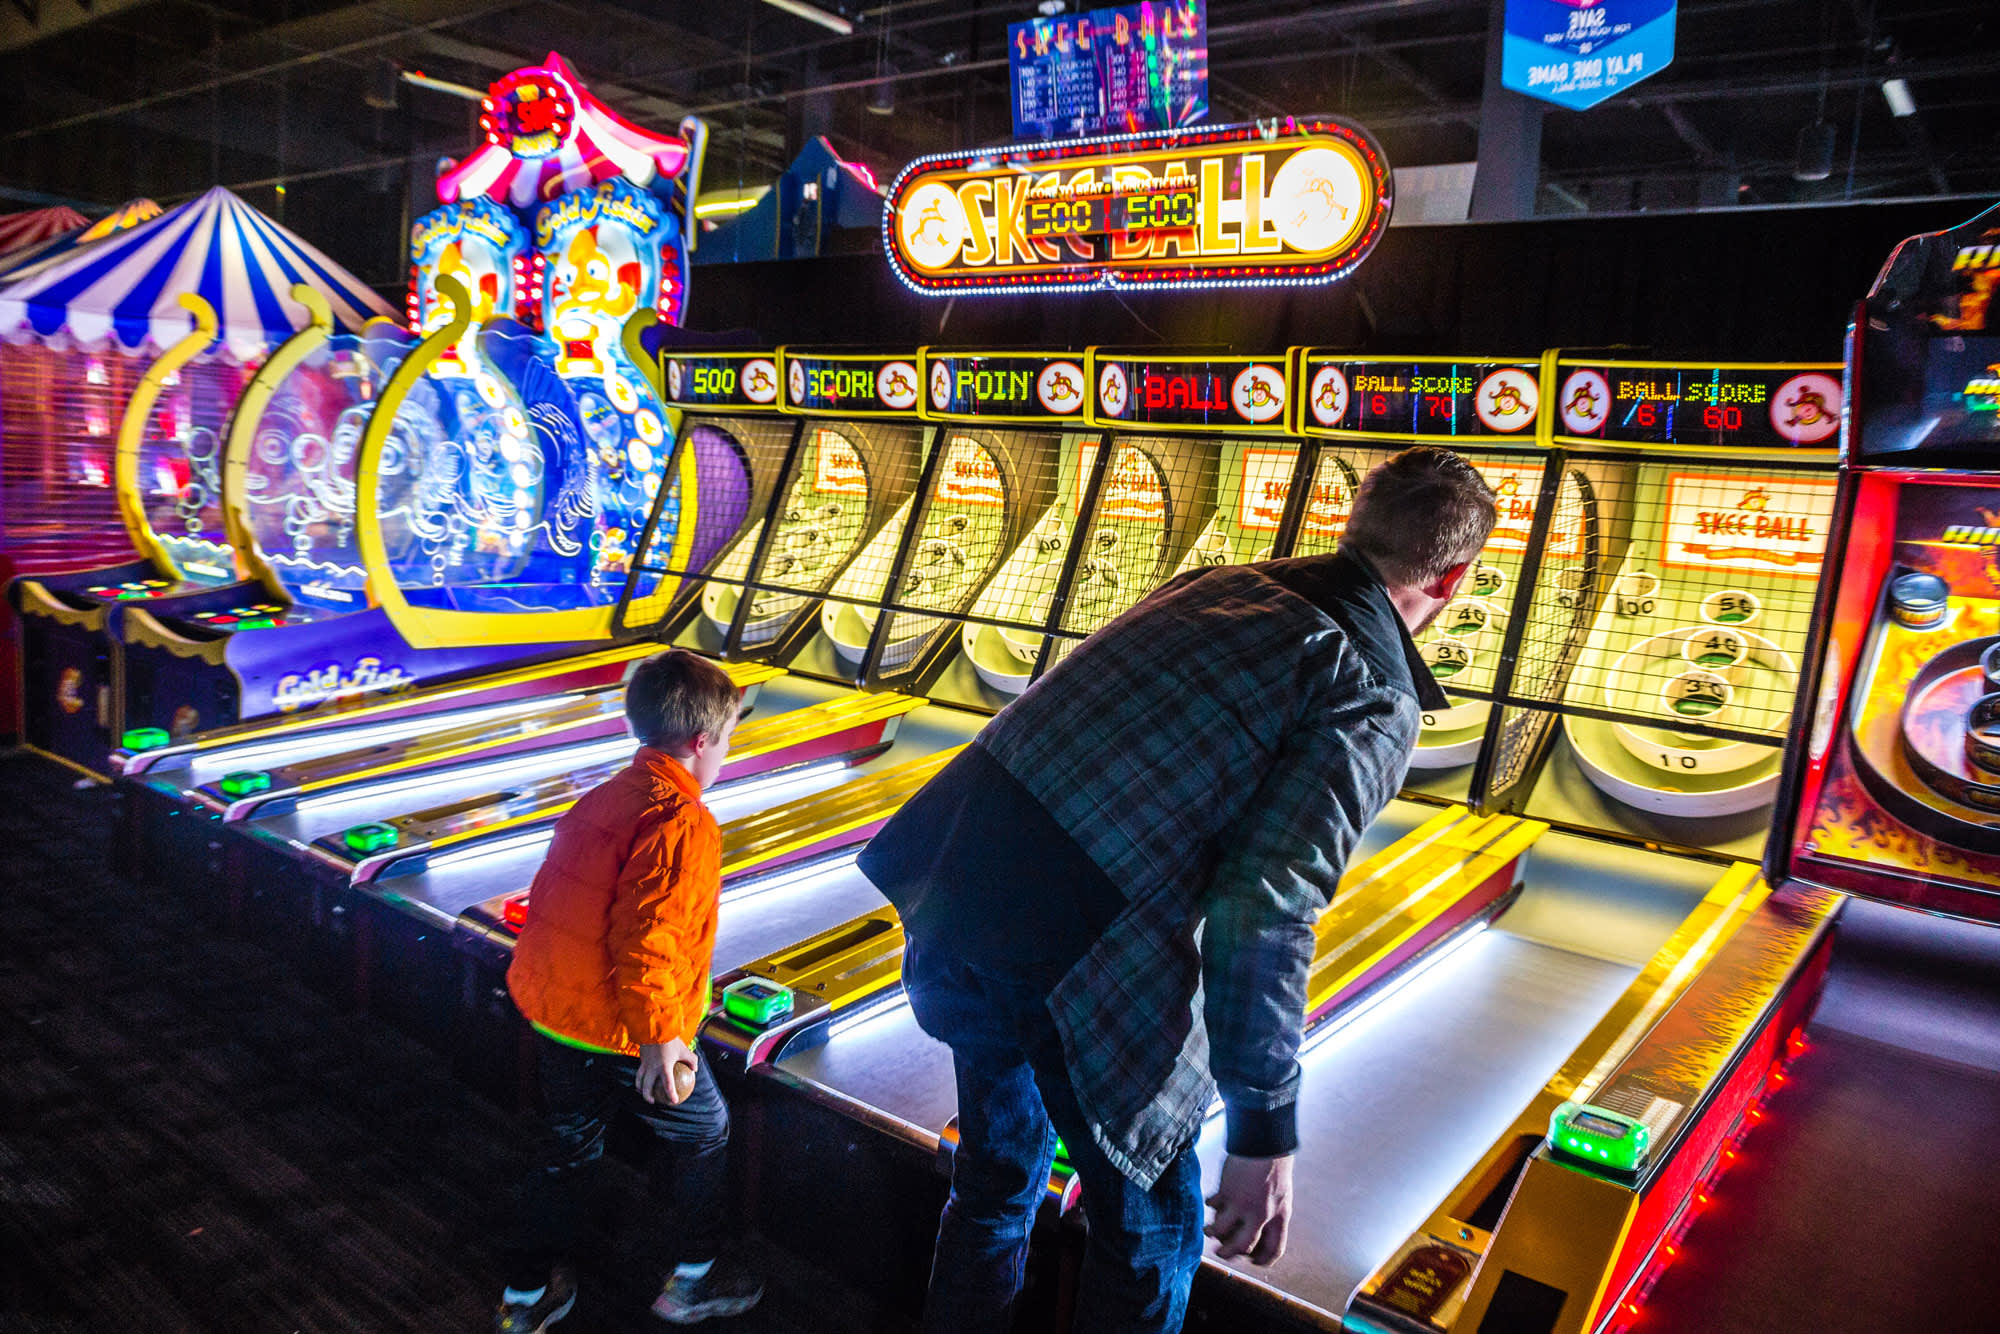 Dave & Buster's is one way malls are filling all those empty Sears